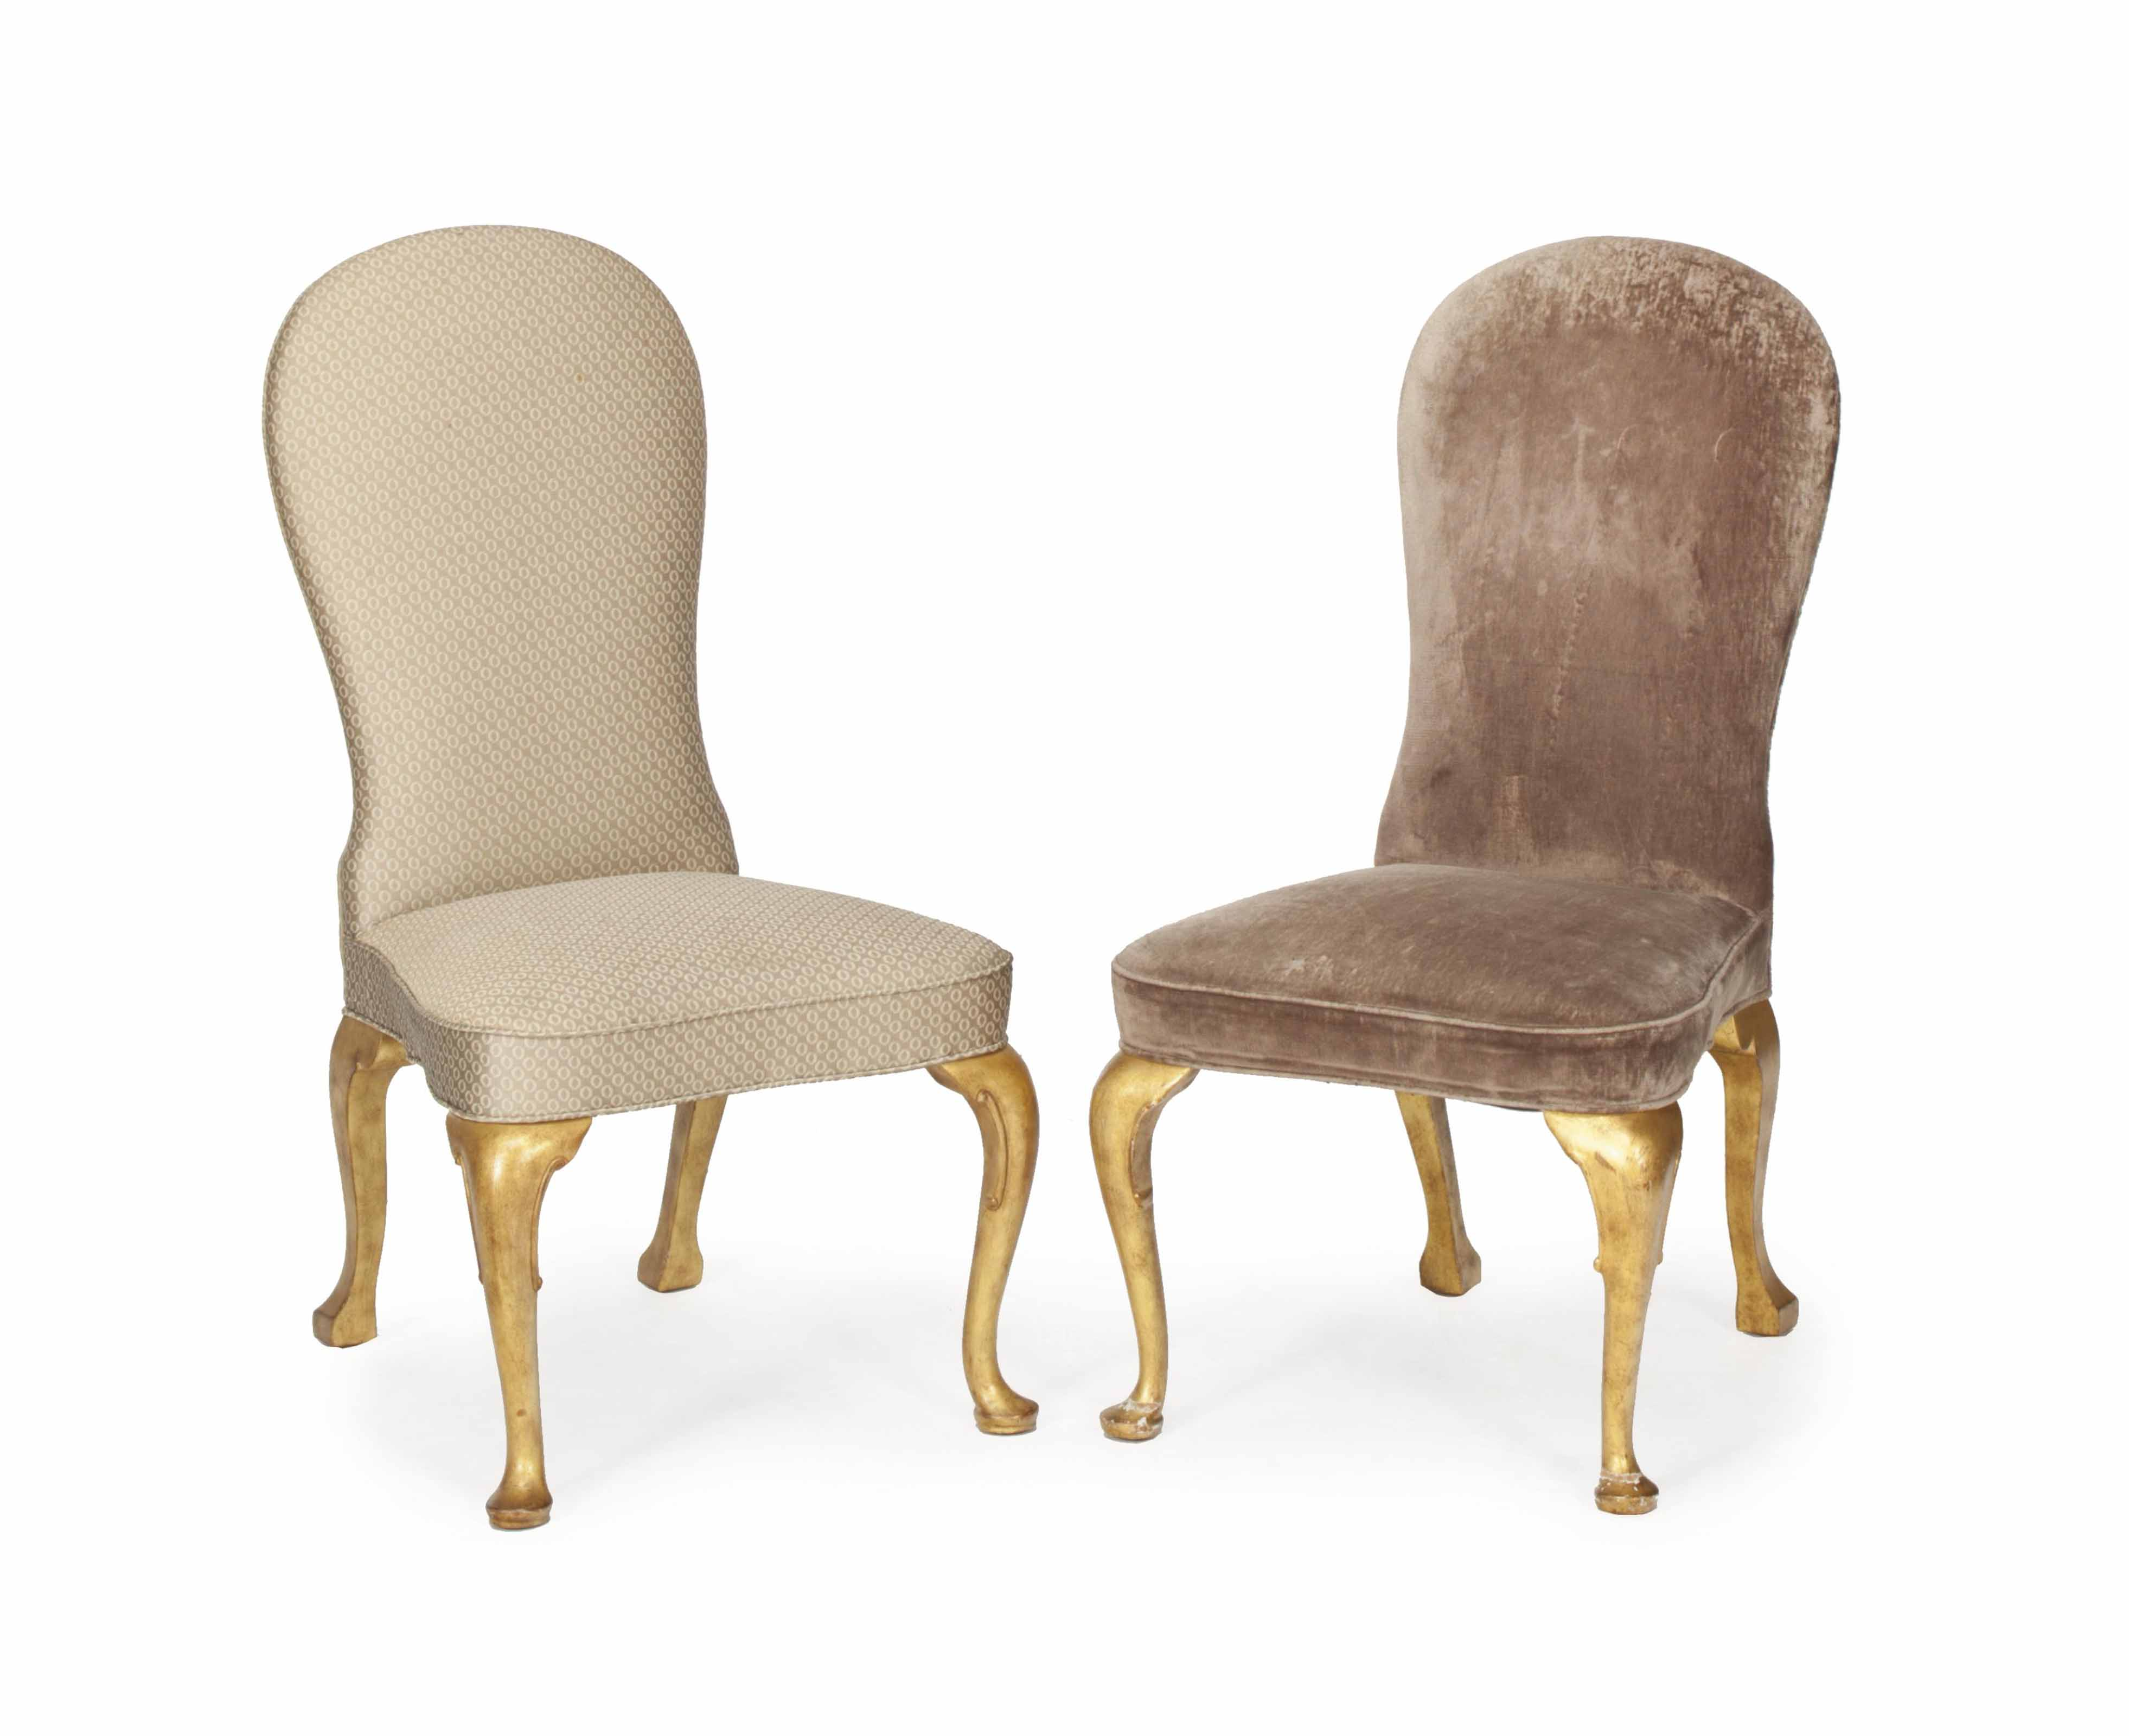 A SET OF TWELVE QUEEN ANNE STYLE PARCEL GILT AND UPHOLSTERED DINING CHAIRS,